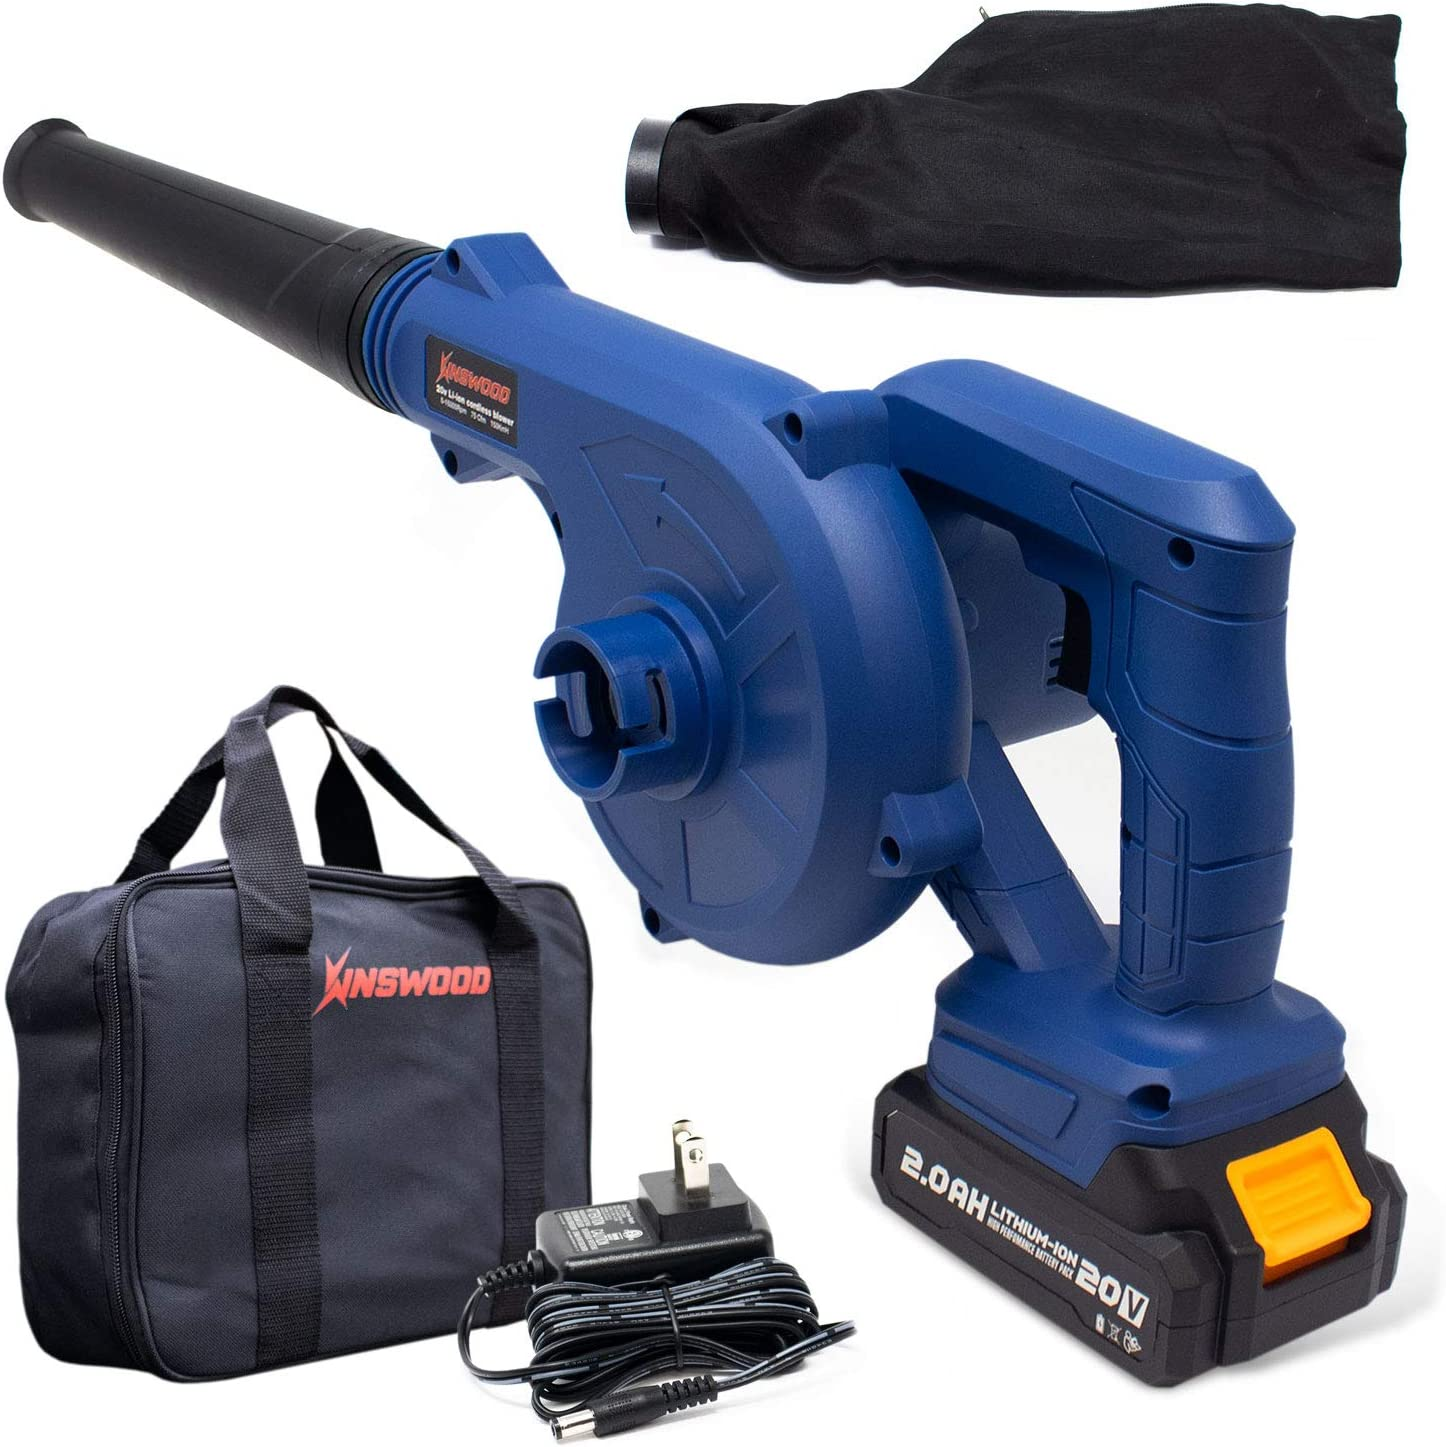 Kinswood 20V 2.0A Batteries Cordless Lithium-ion 12-in-1 Blower Vacuum for Blowing Leaves, Vacuuming Dusts